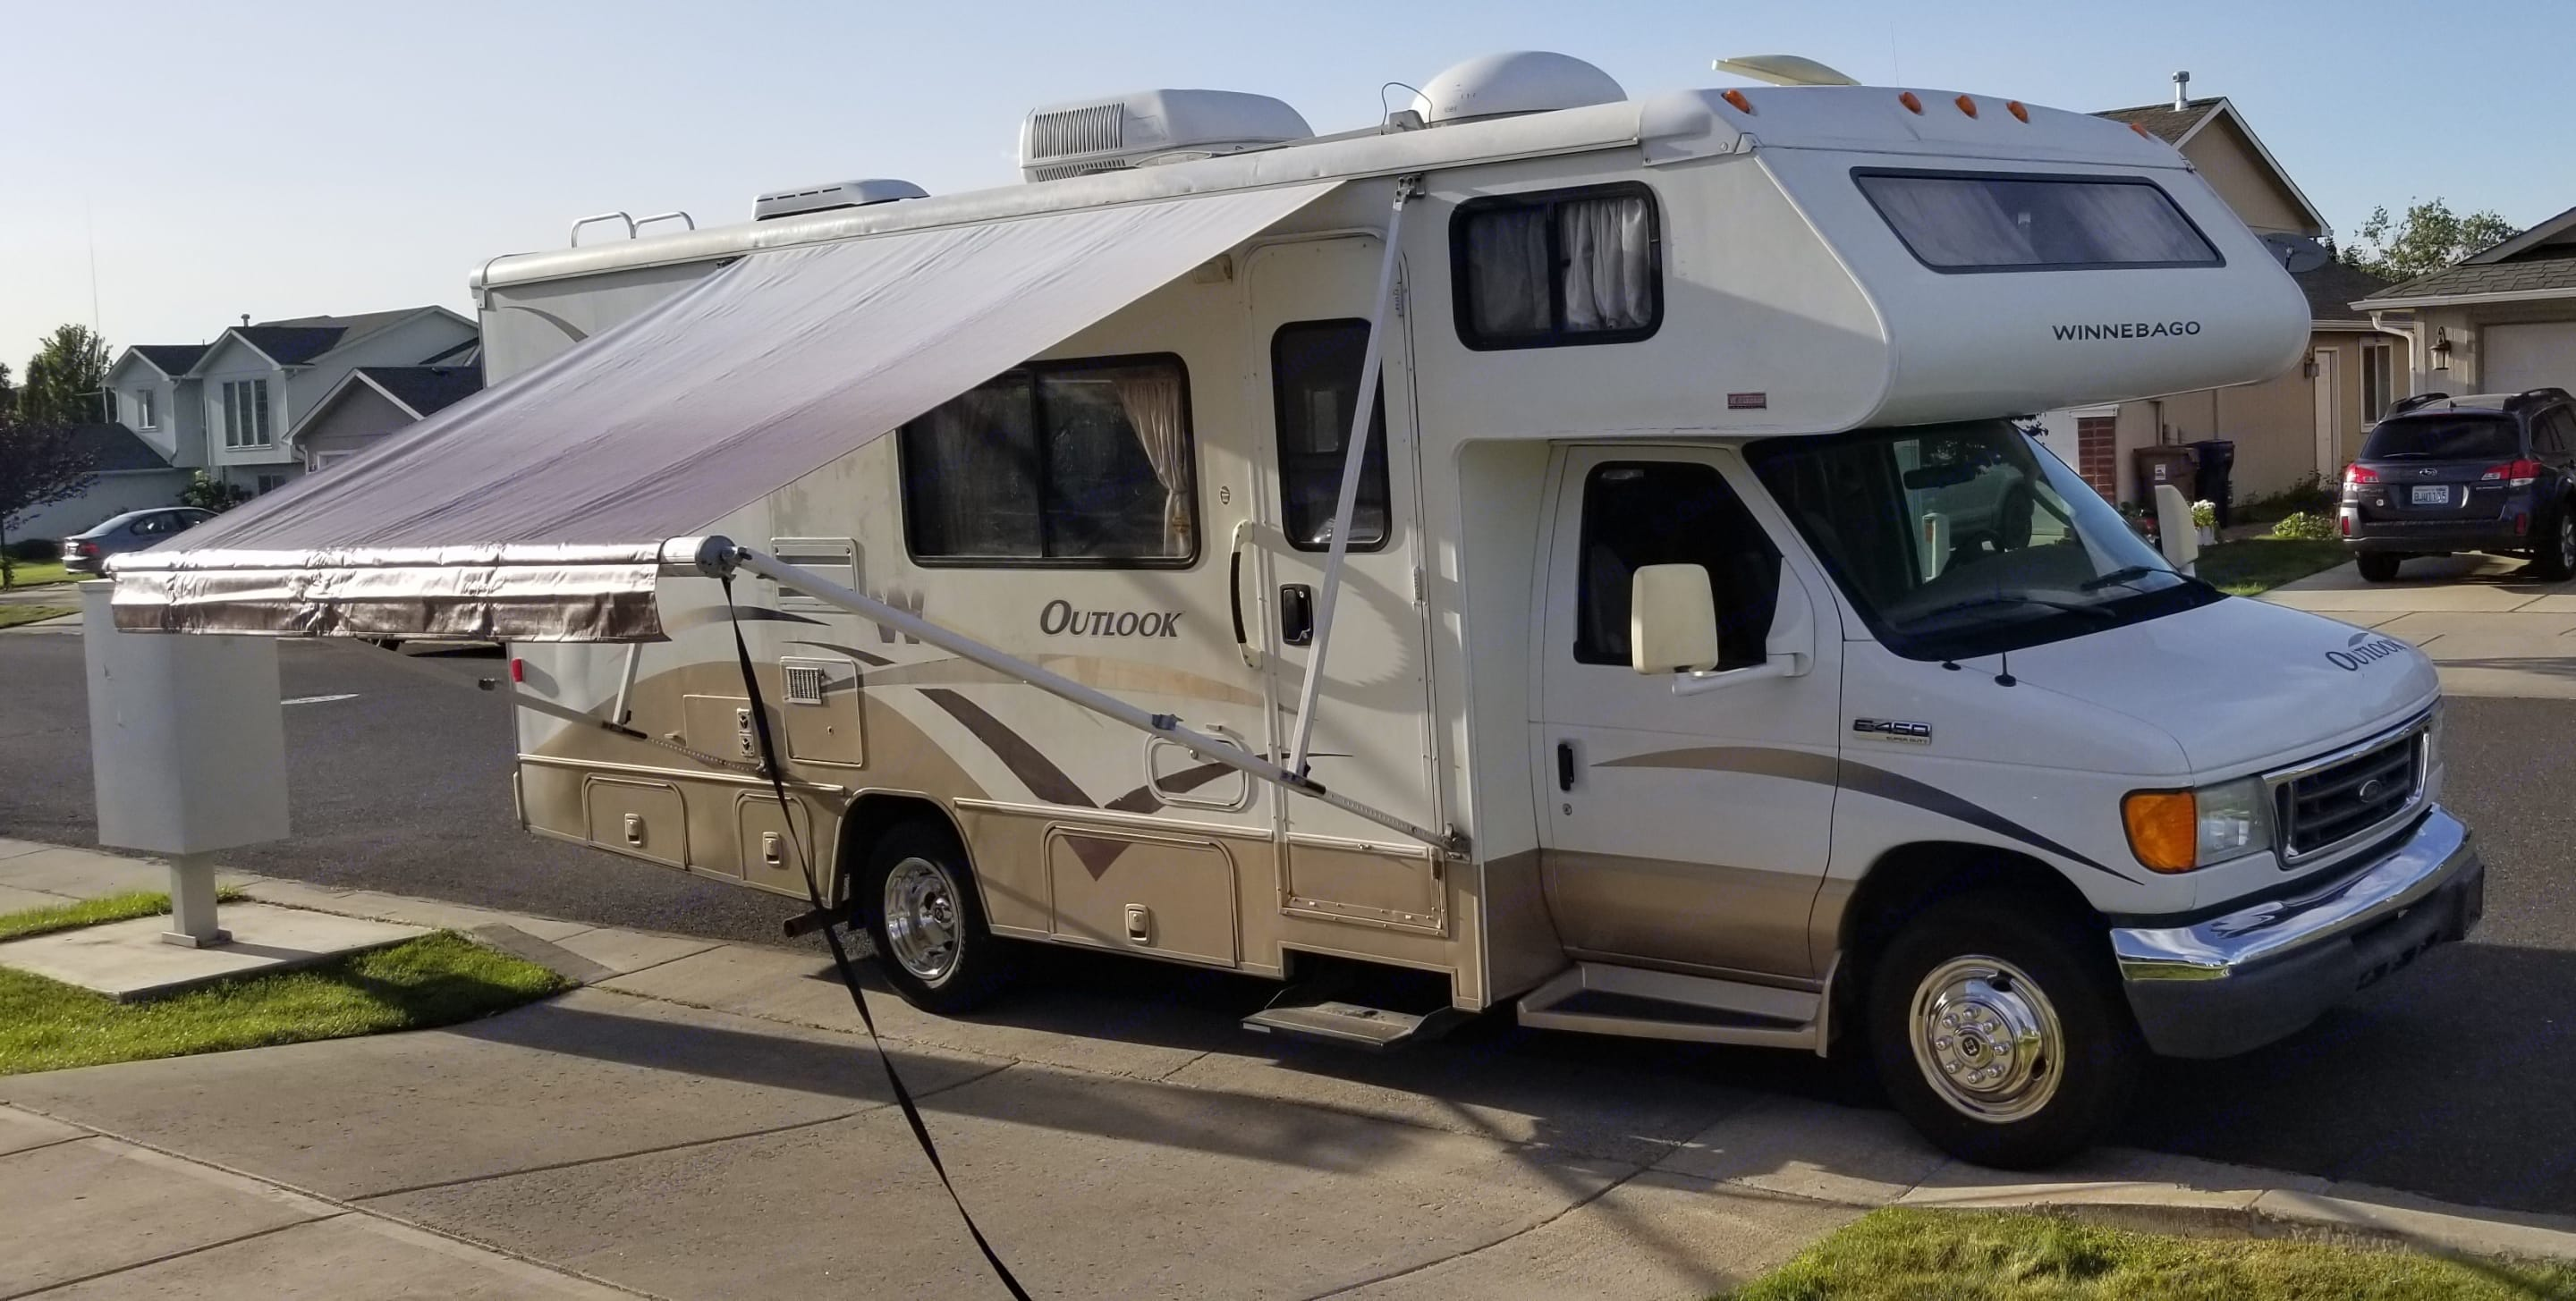 Latest with Awning. Winnebago Outlook 2006